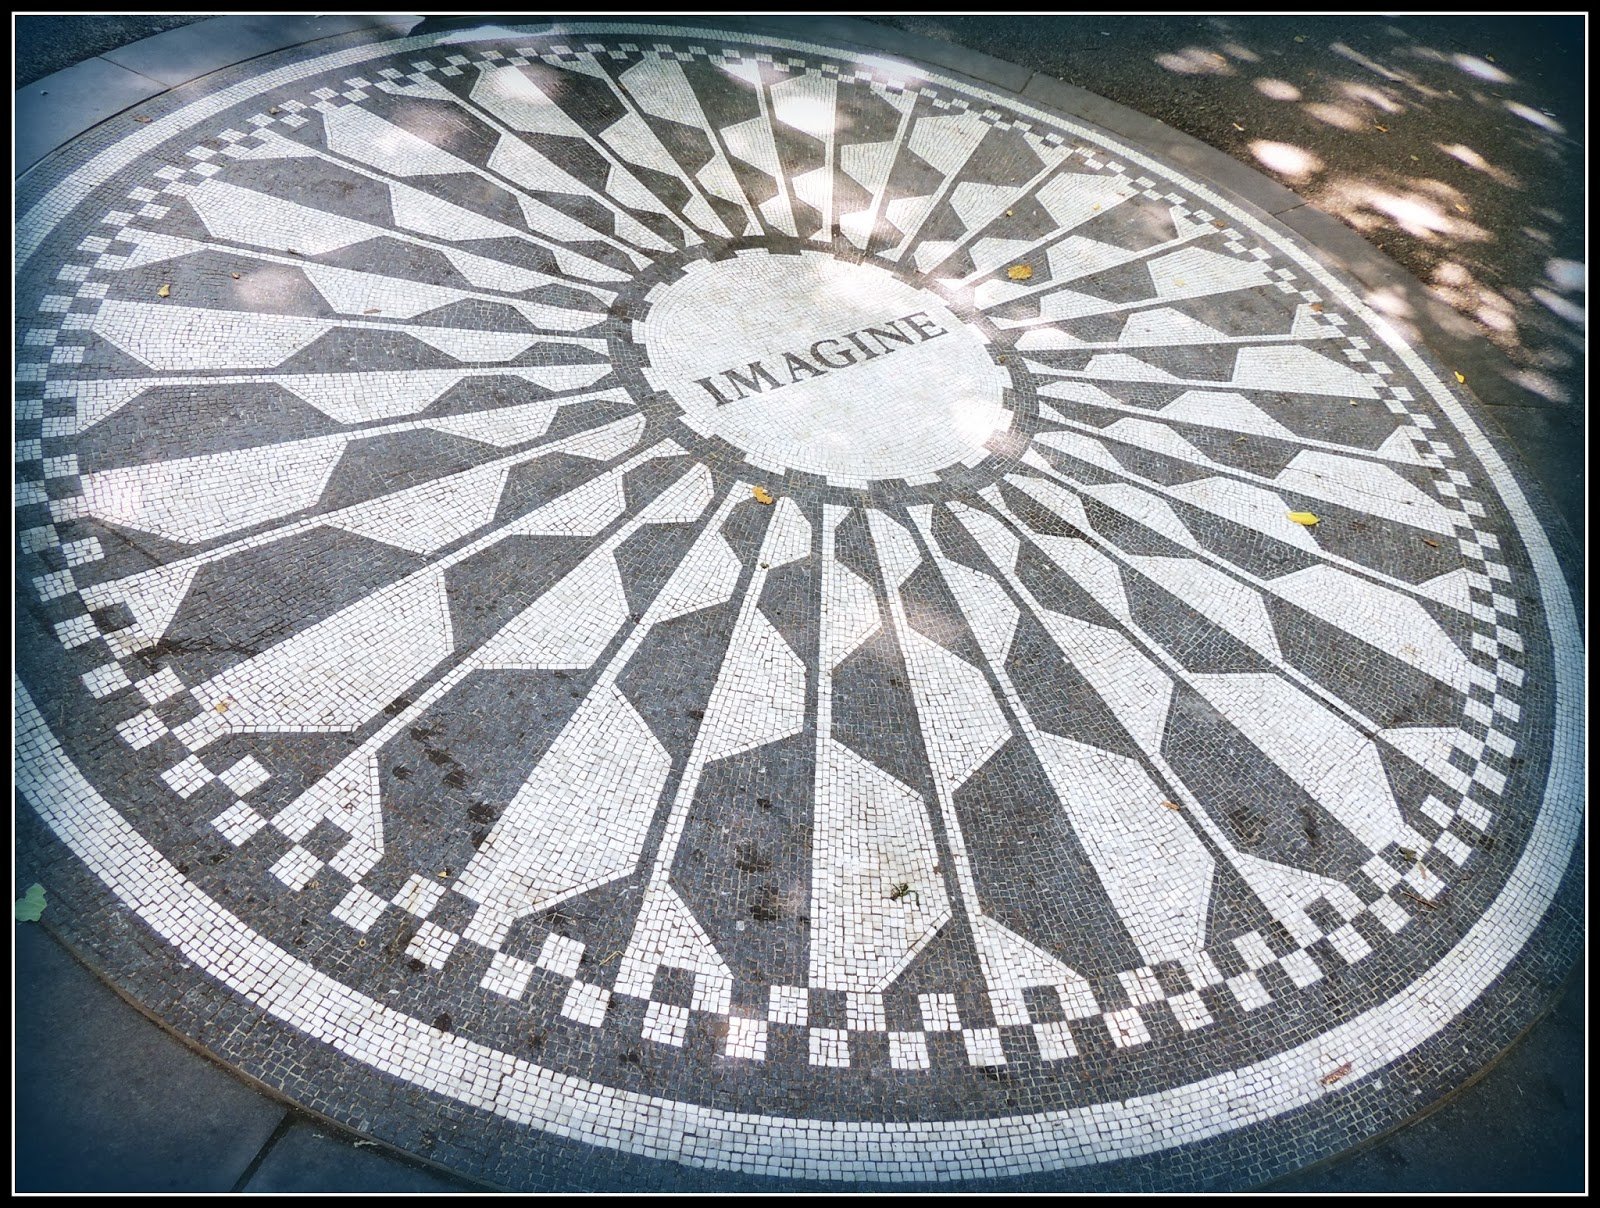 NY en 3 Días: Strawberry Fields en Central Park